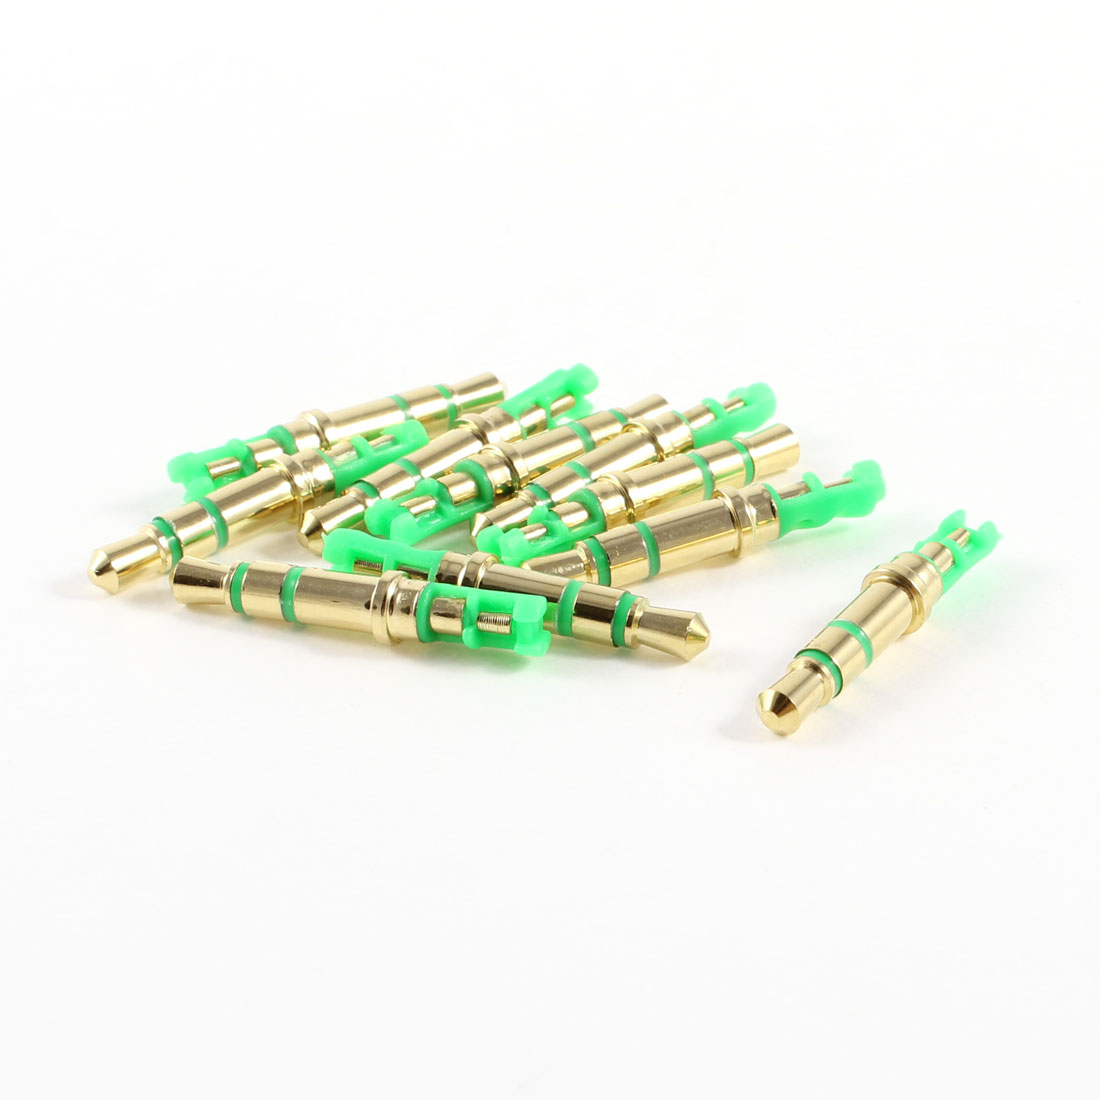 10 Pcs Green 3.5mm Male 3 Pole Stereo Earphone Headphone Audio Jack